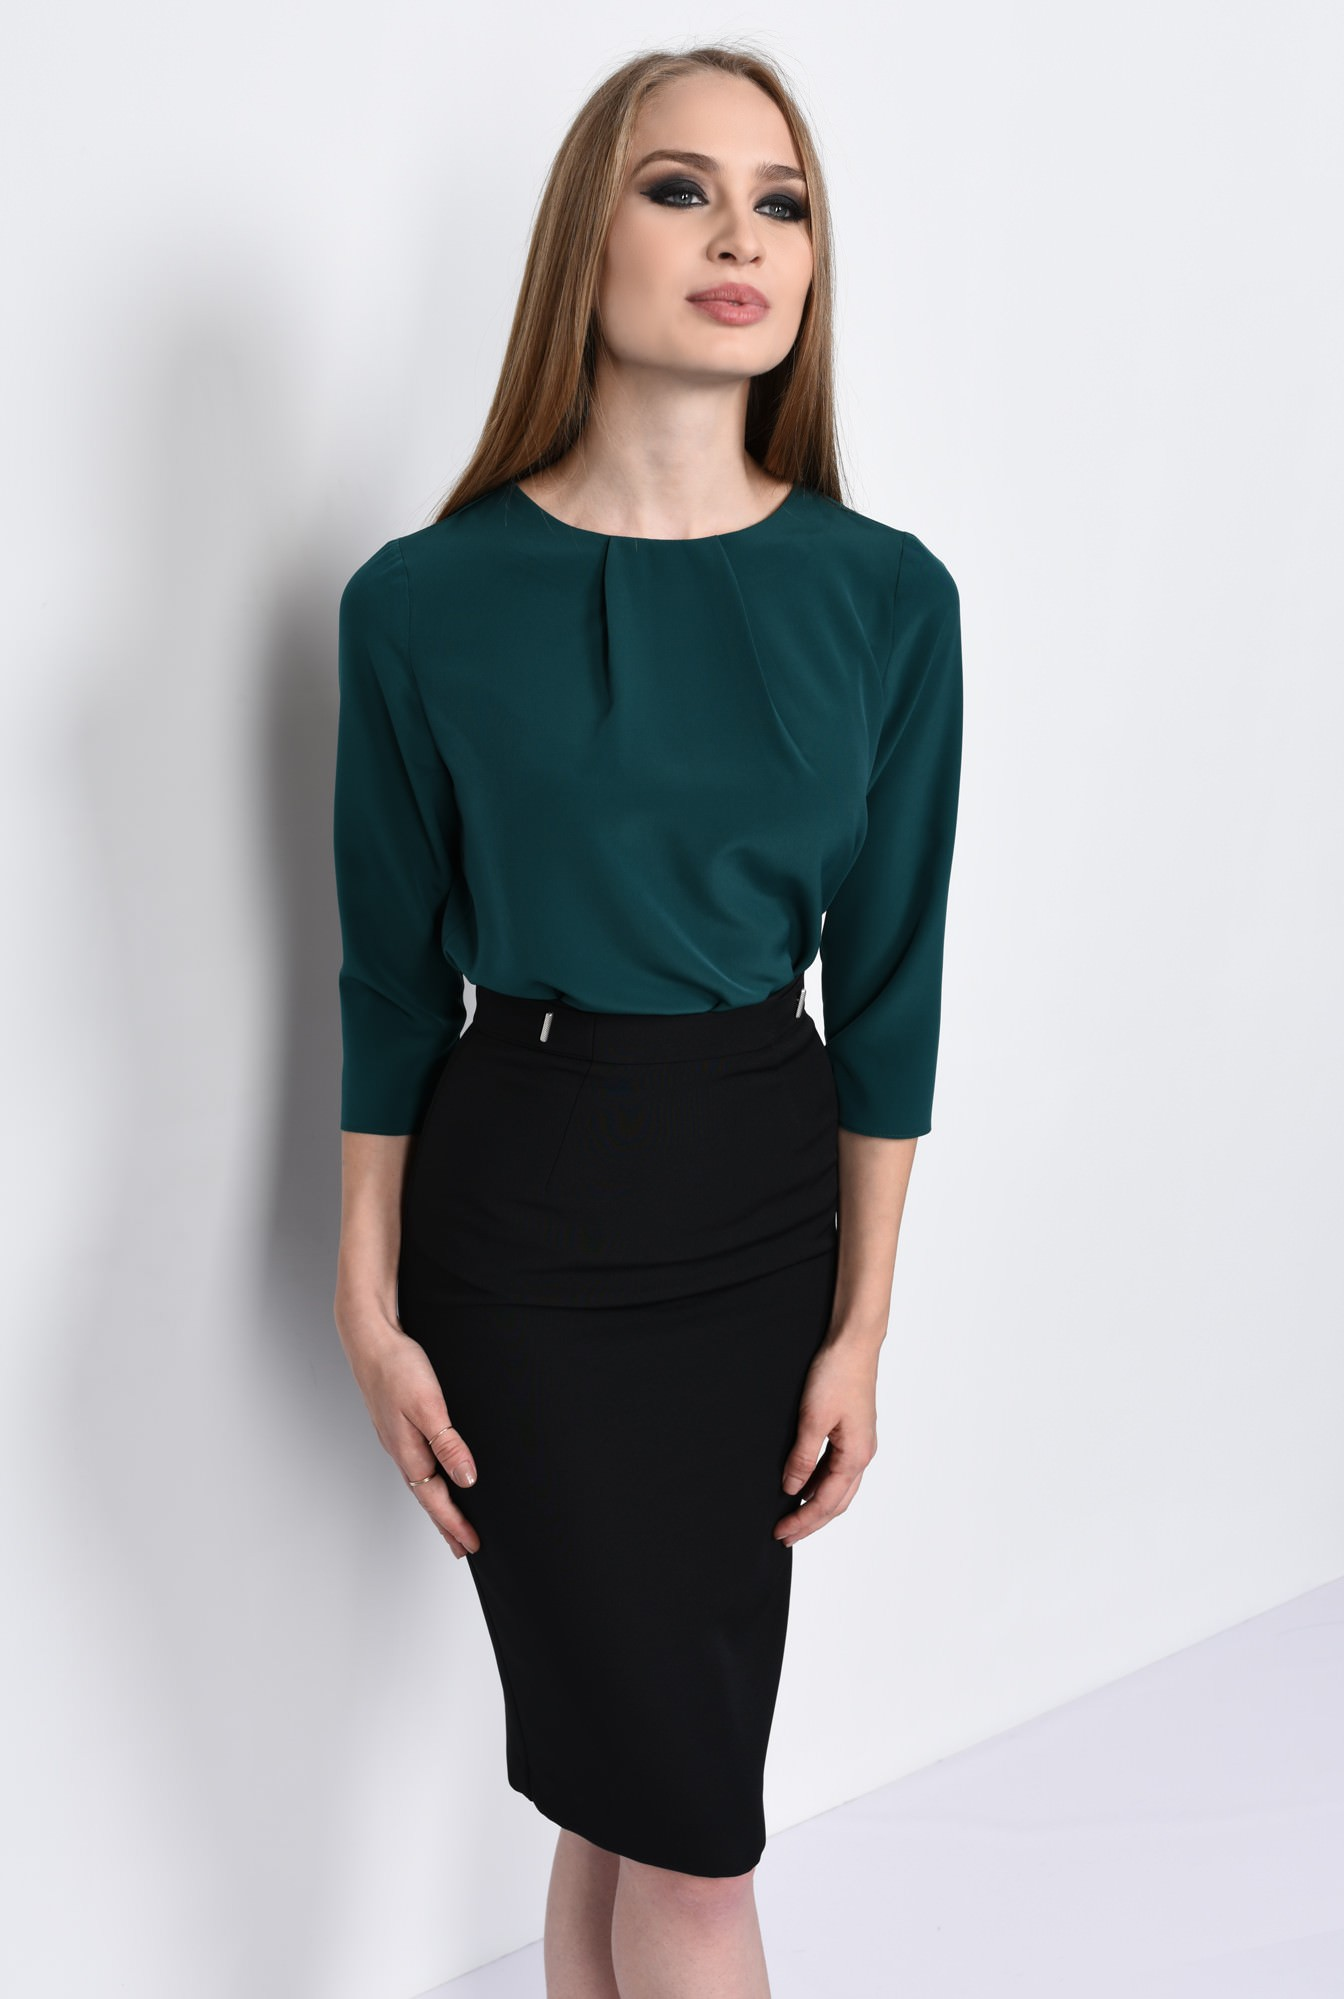 0 - BLUZA OFFICE BL 151-VERDE